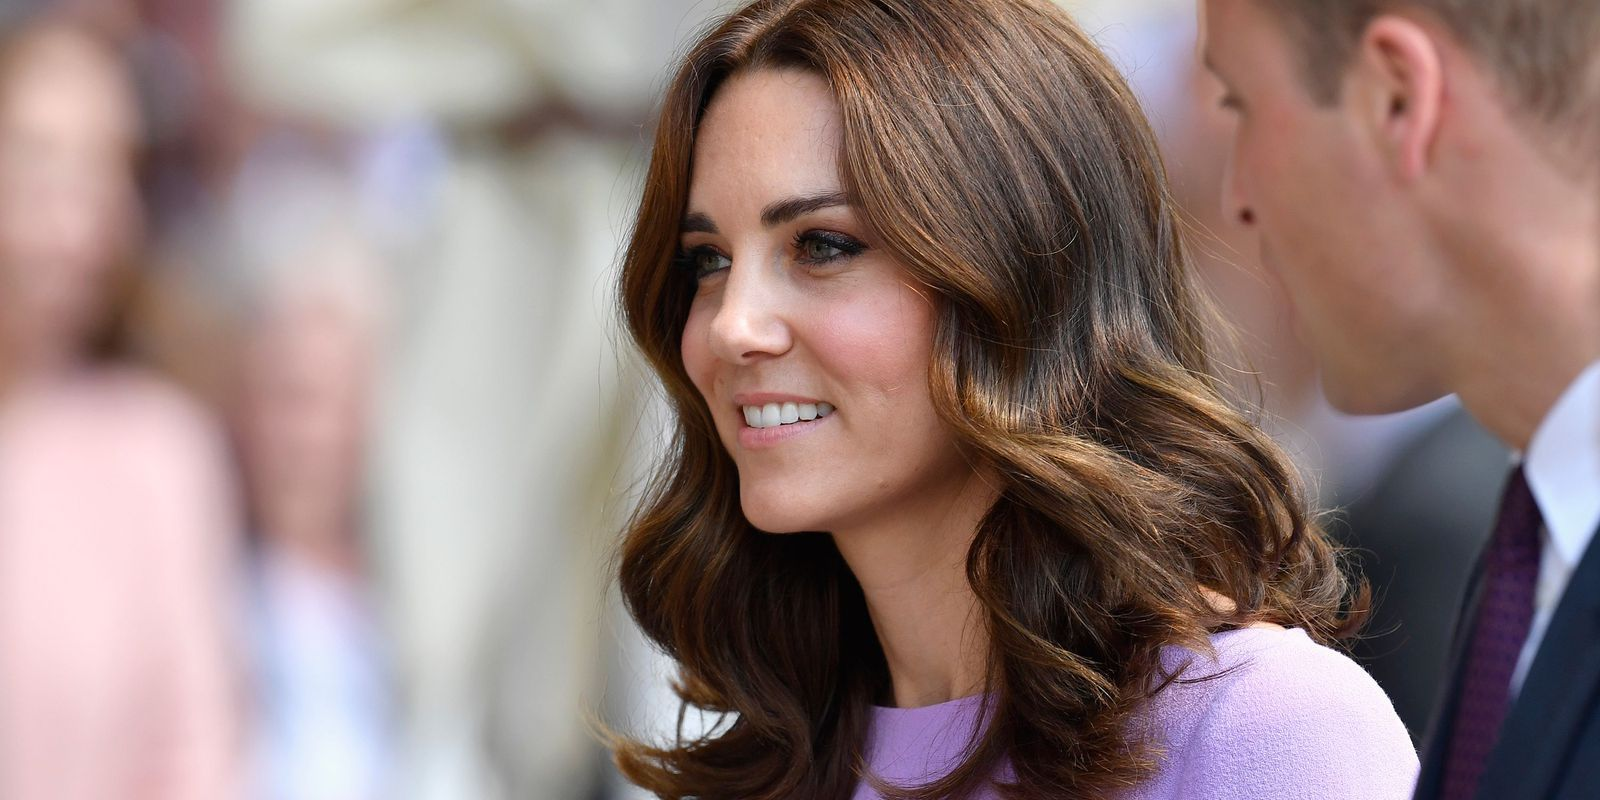 What Would It Take To Become Kate Middleton's Nanny